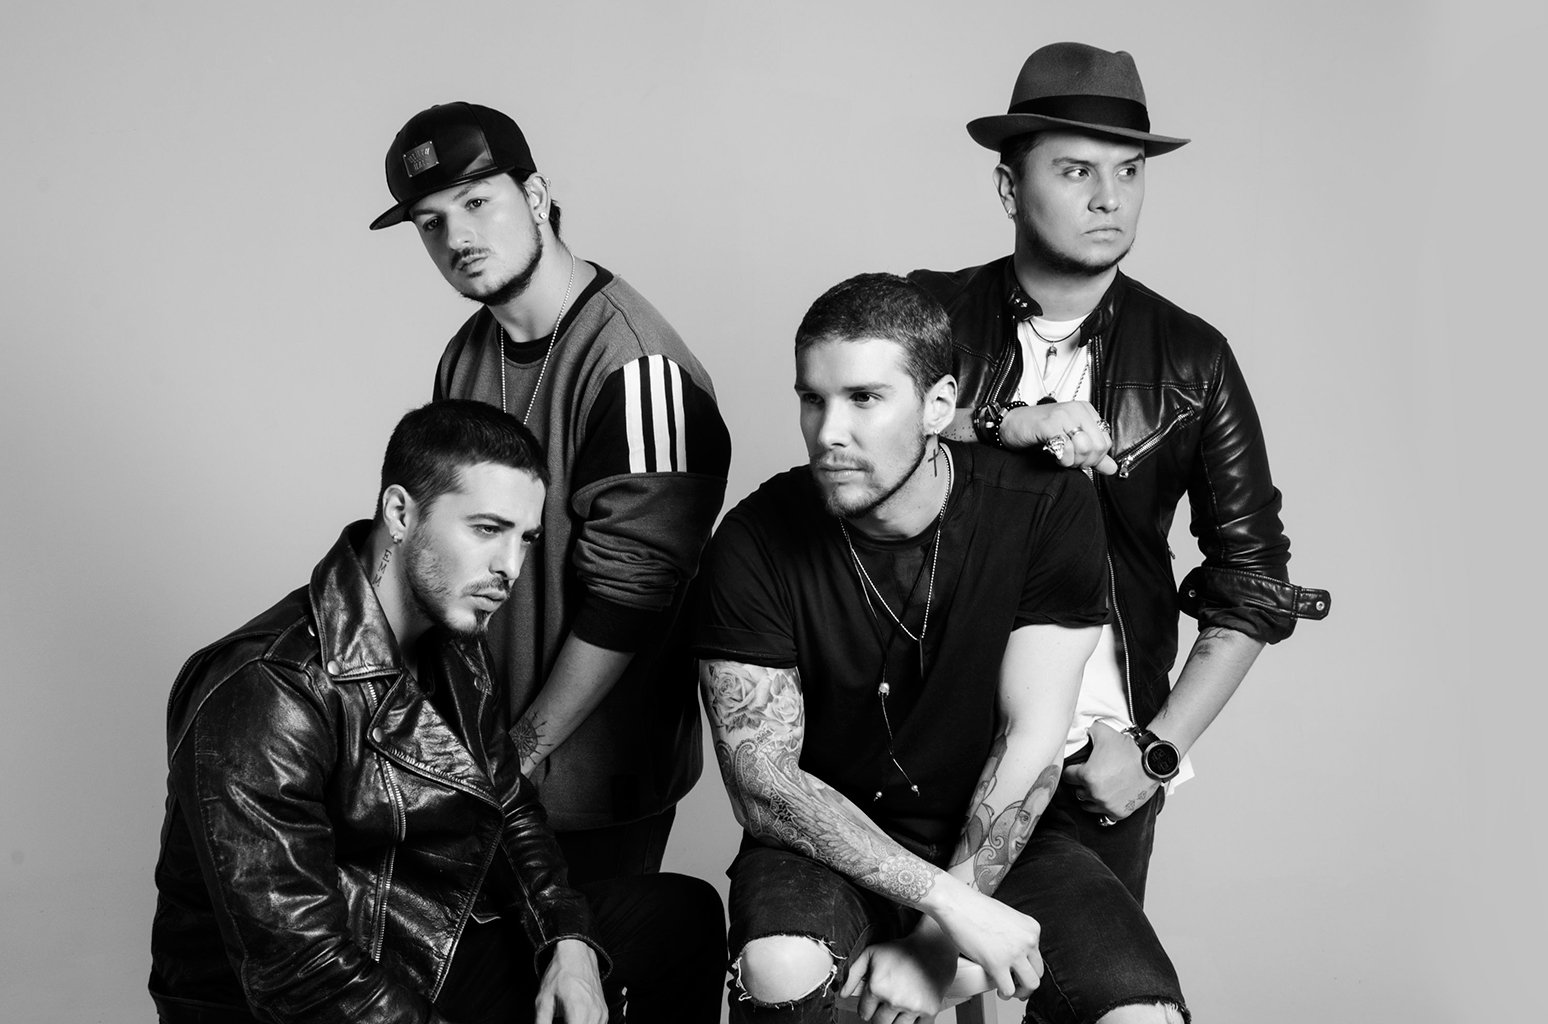 Watch Piso 21 celebrate their latest Billboard hit with an acoustic session https://t.co/hBR3JVSLDc https://t.co/DgBYBKT5Yk